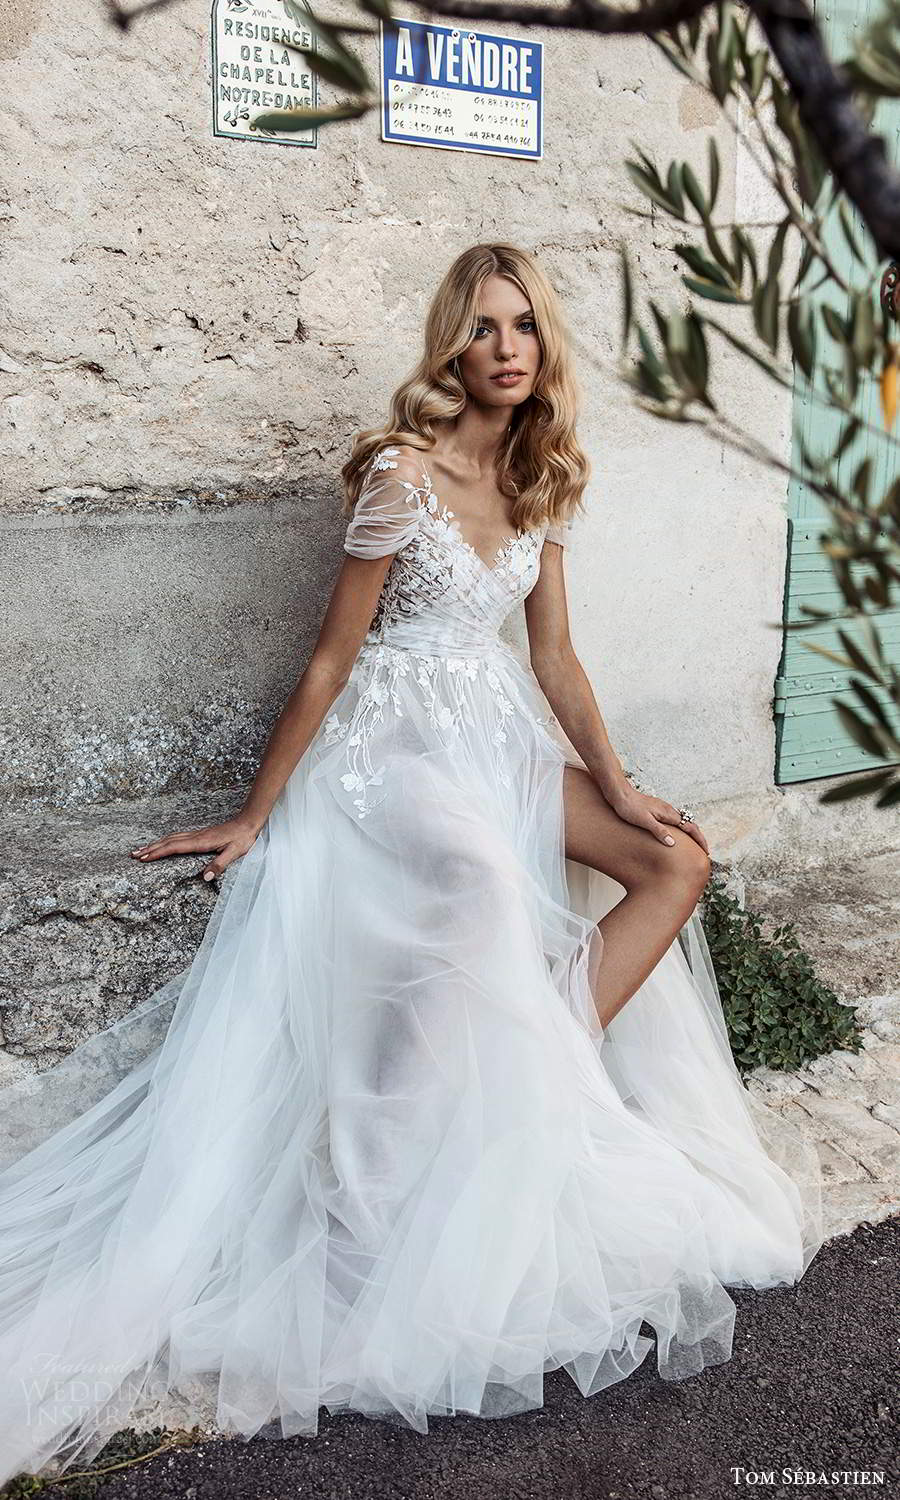 tom sebastien 2021 bridal provence sheer short sleeves surplice v neckline embellished ruched bodice a line ball gown wedding dress chapel train (13) zv